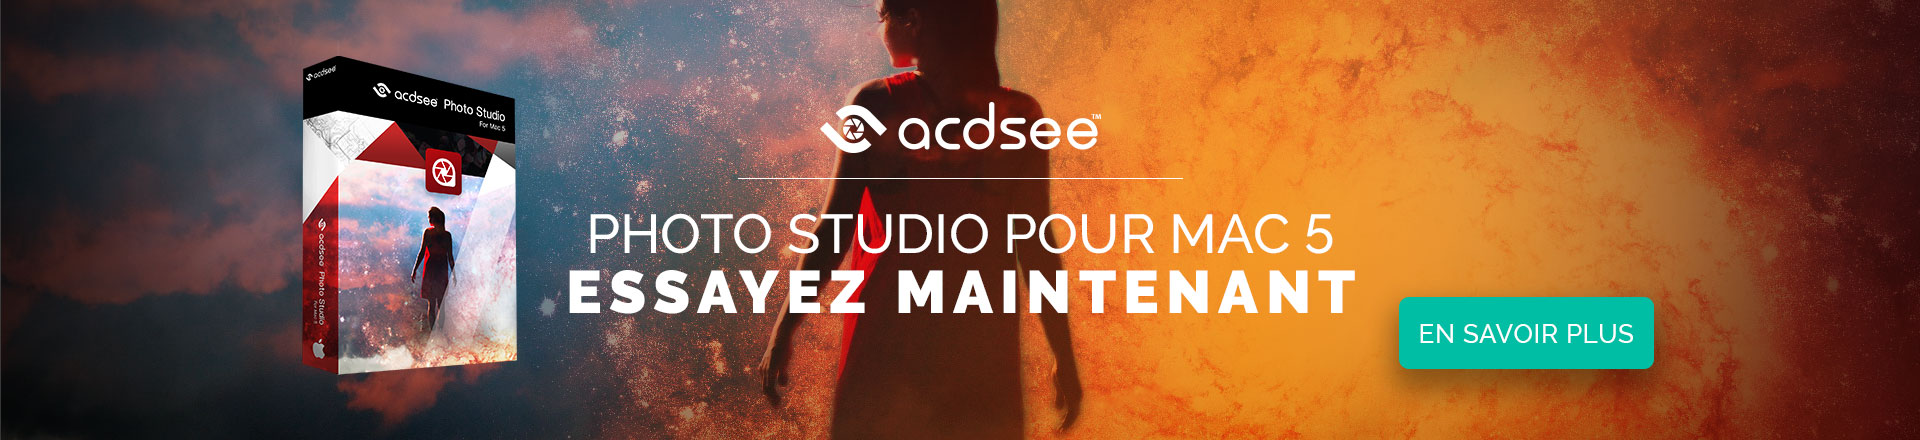 ACDSee Campaign banner